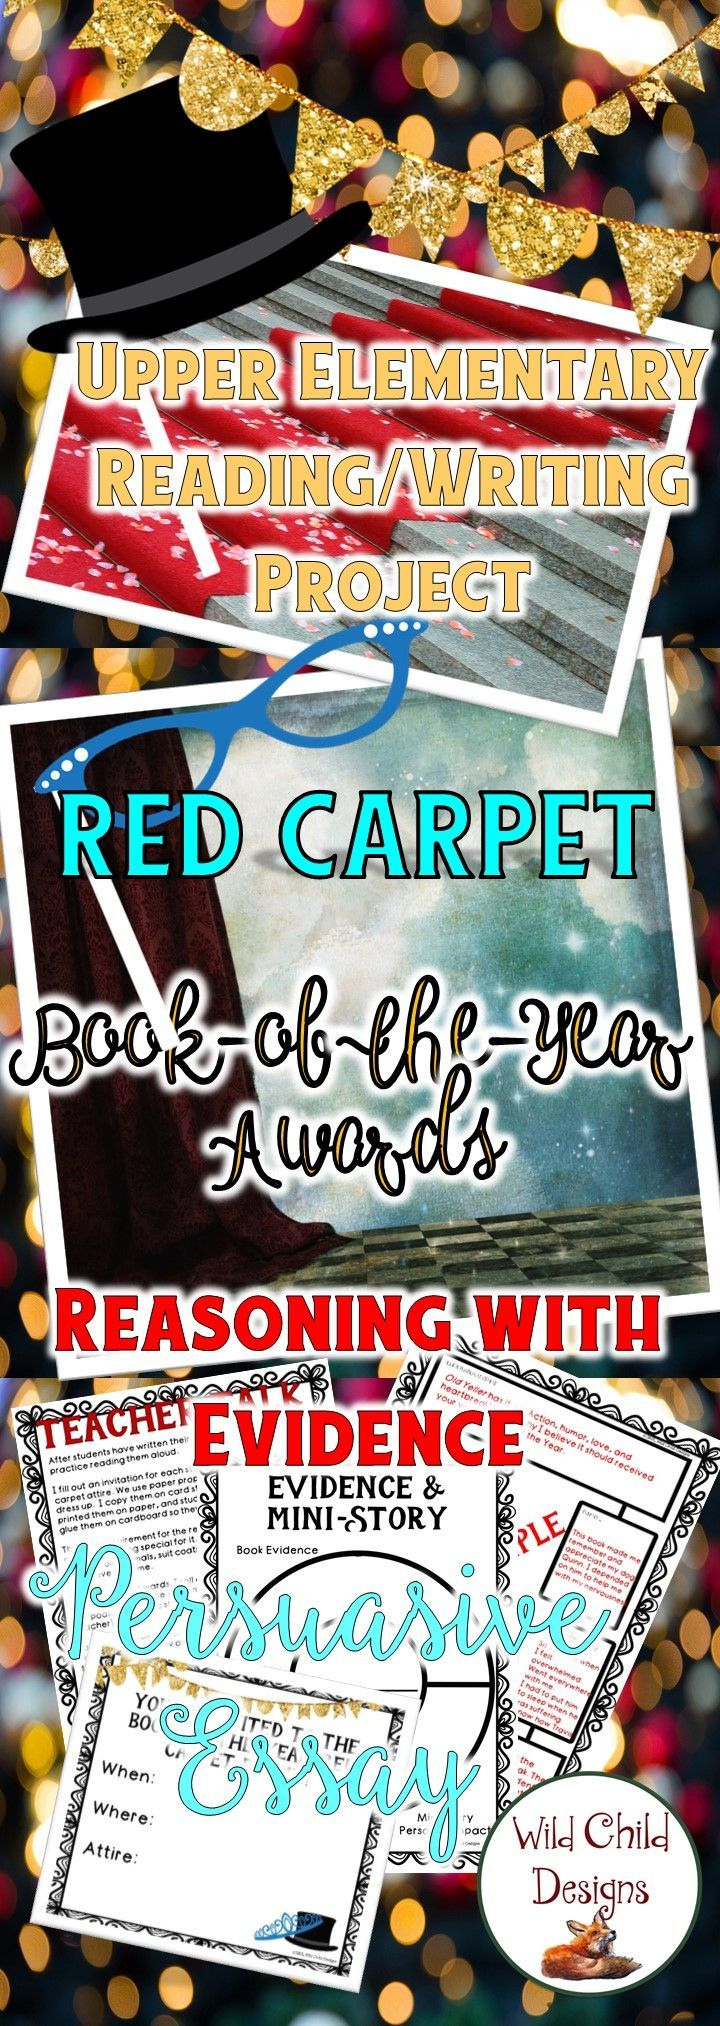 Book of the Year Red Carpet Awards